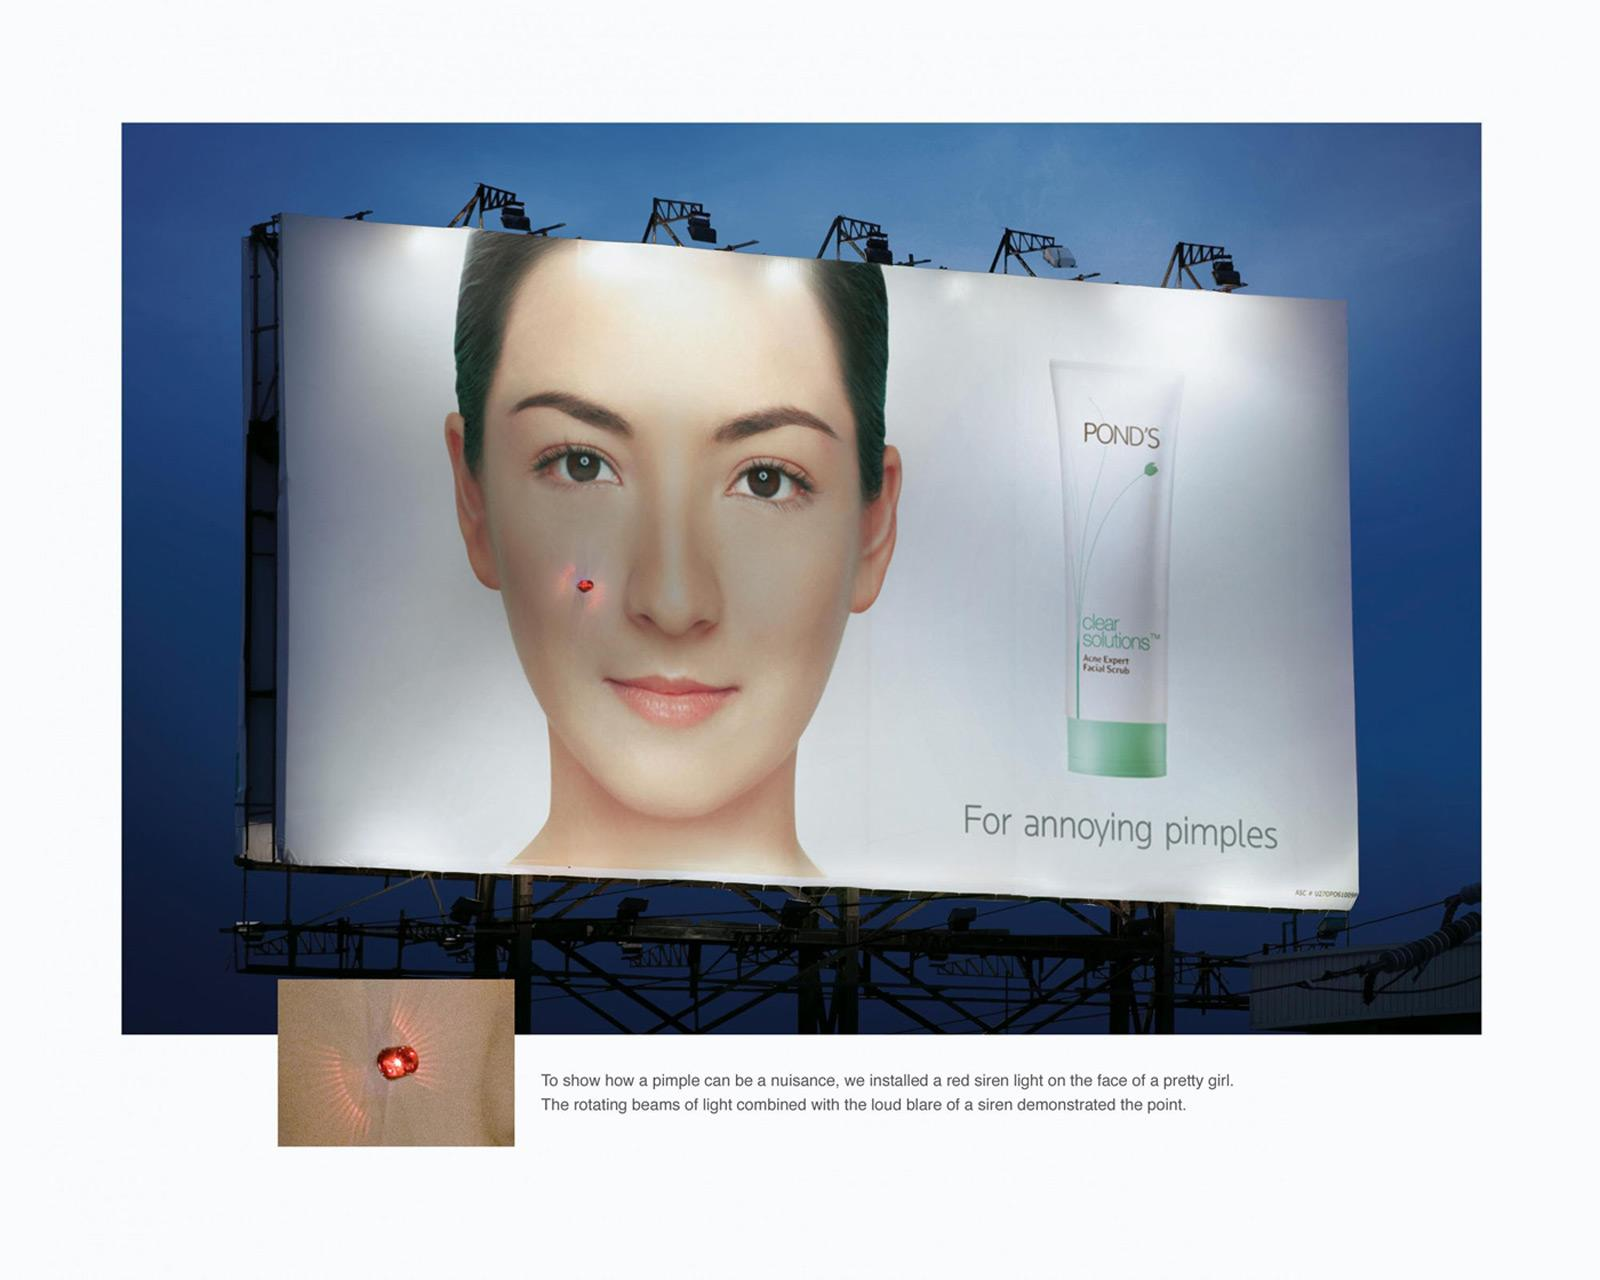 Pond's Ambient Ad -  For annoying pimples